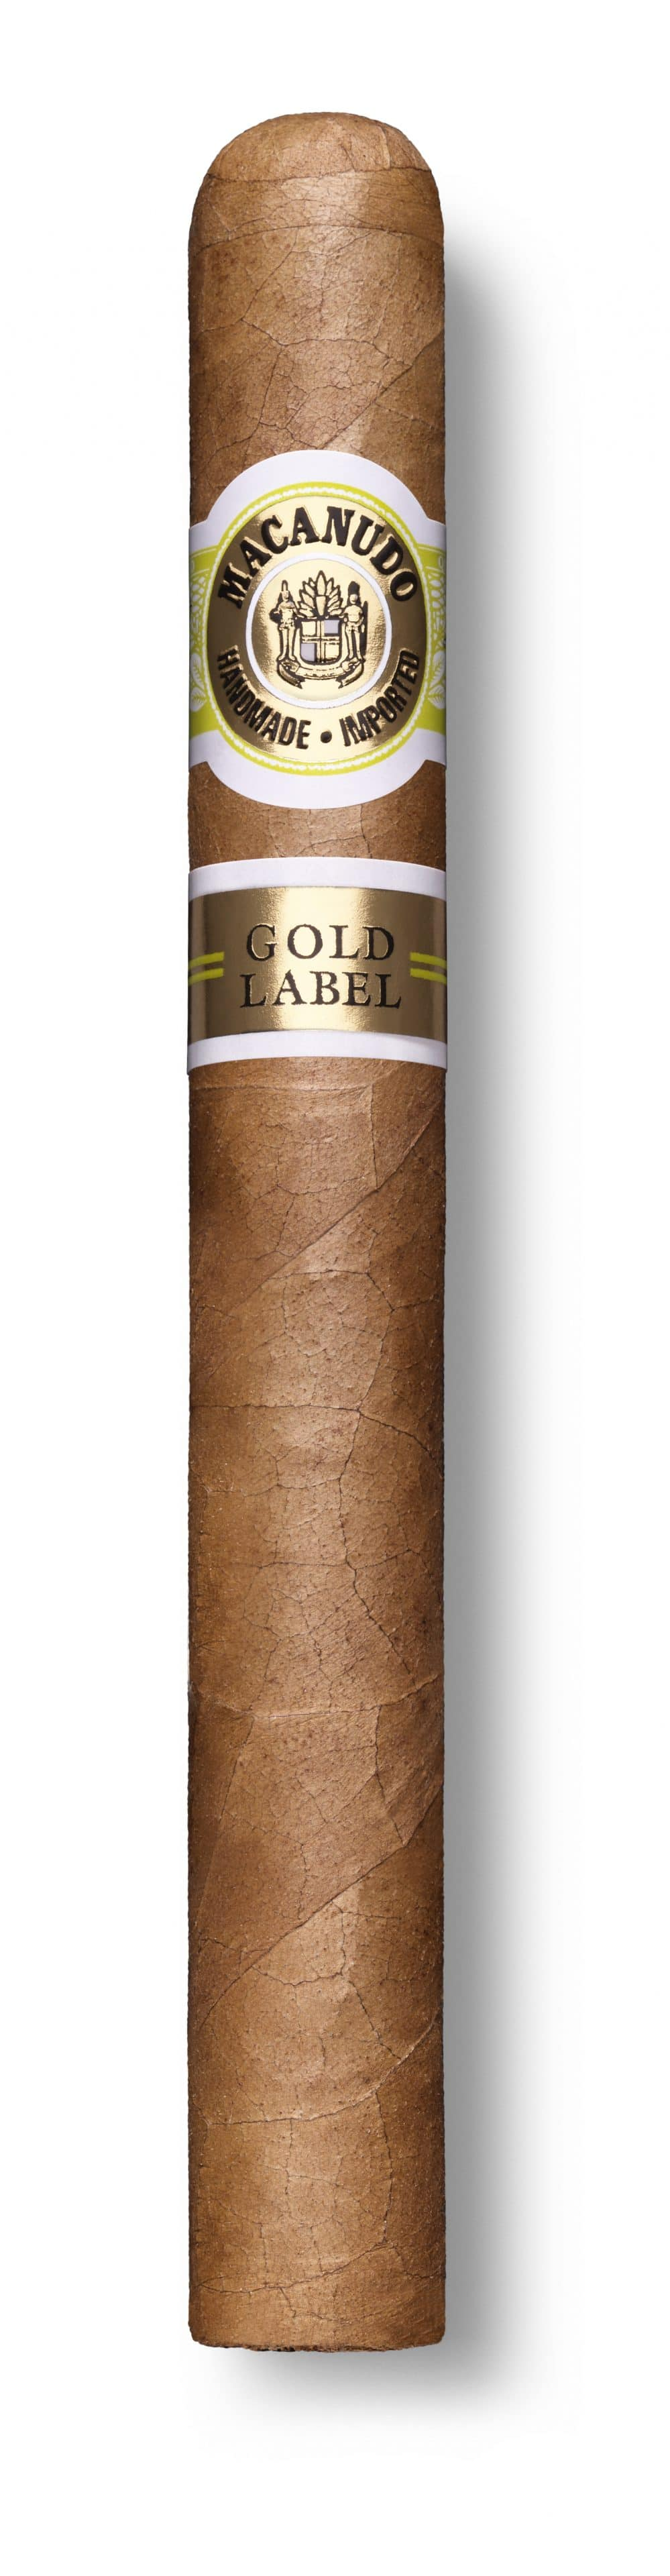 Macanudo Gold Label Returns for 2021 with New Size - Cigar News